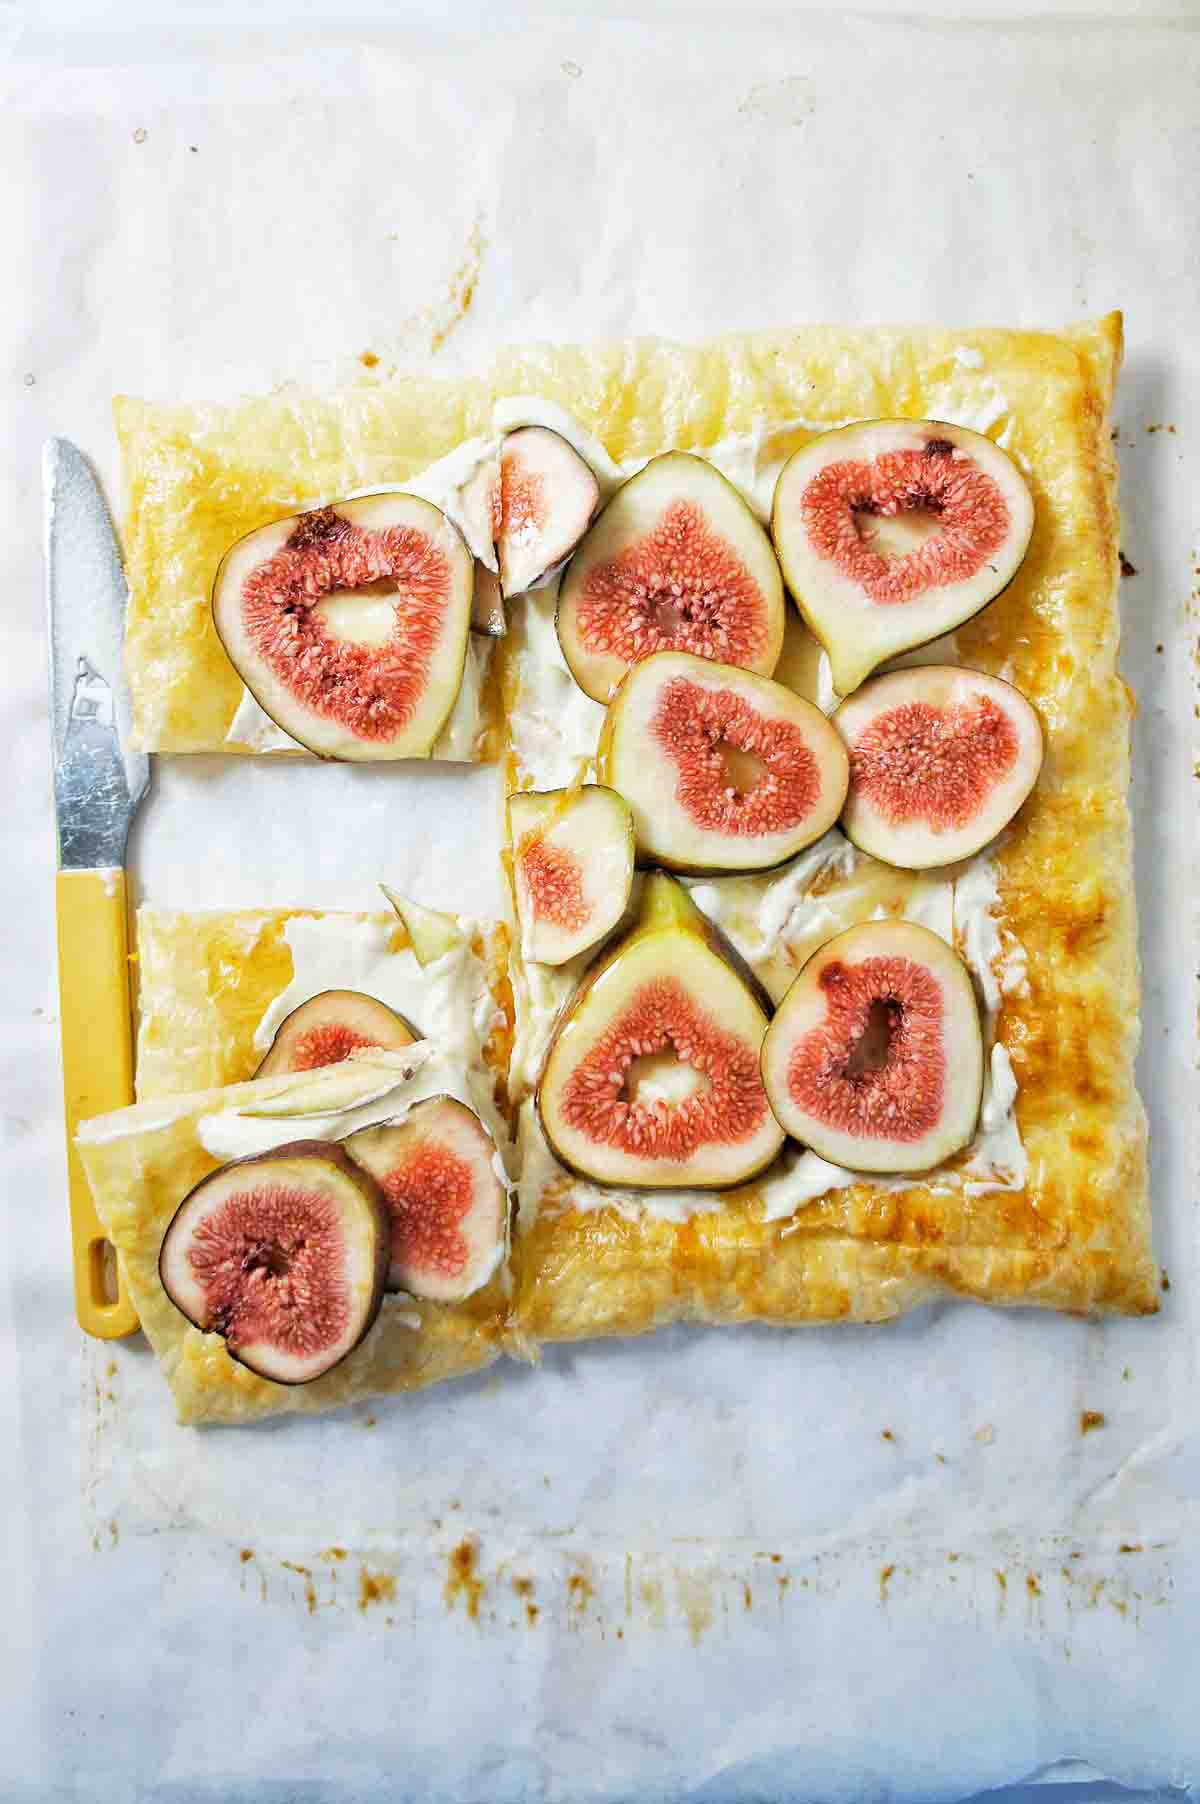 Fig Tart on a white background with a knife on the side